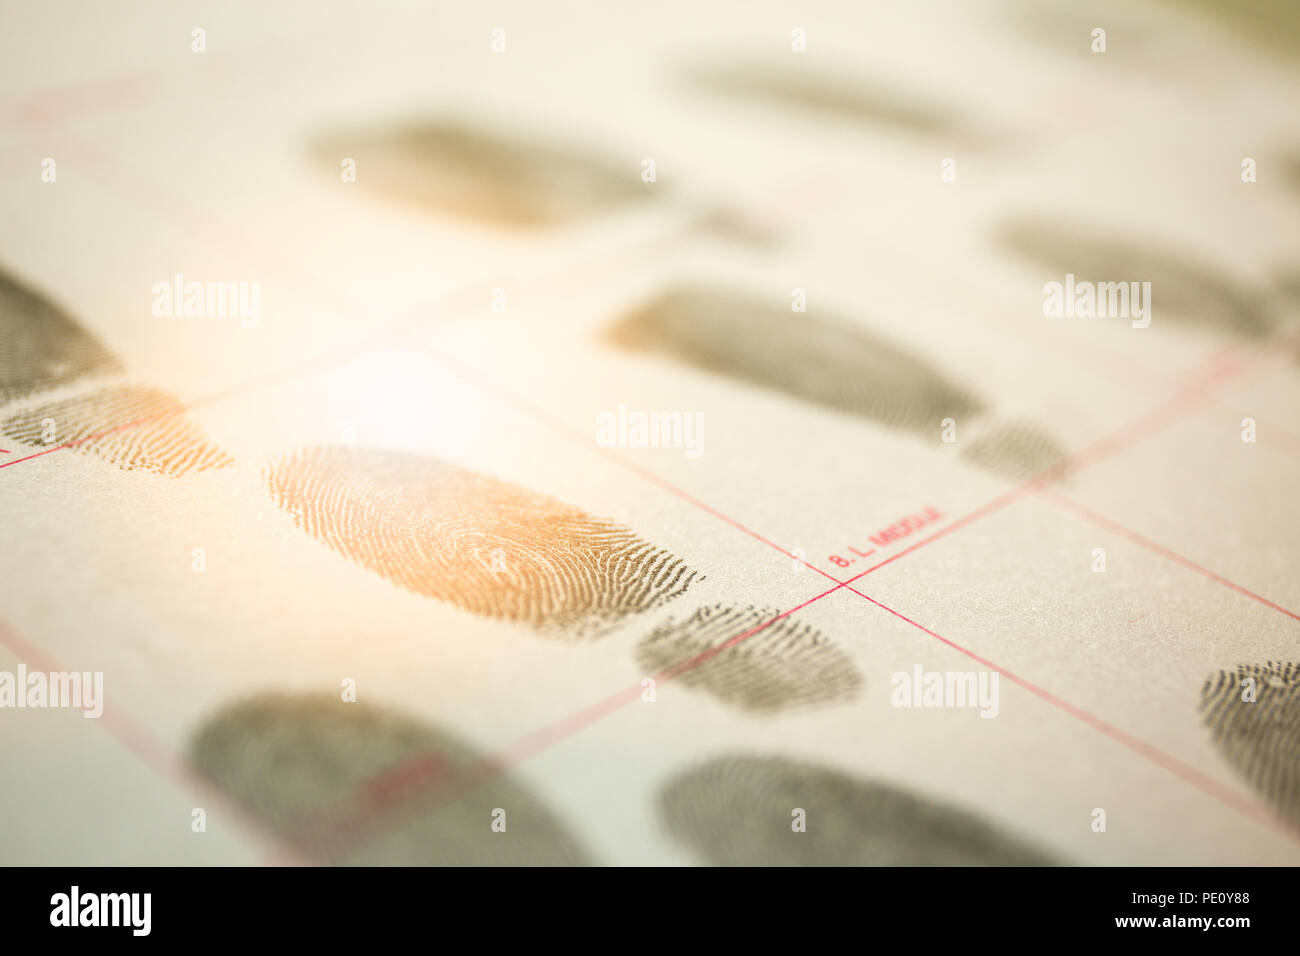 physiological biometrics concept of criminal record by suspect fingerprint for forensic science database with cinematic tone - Stock Image